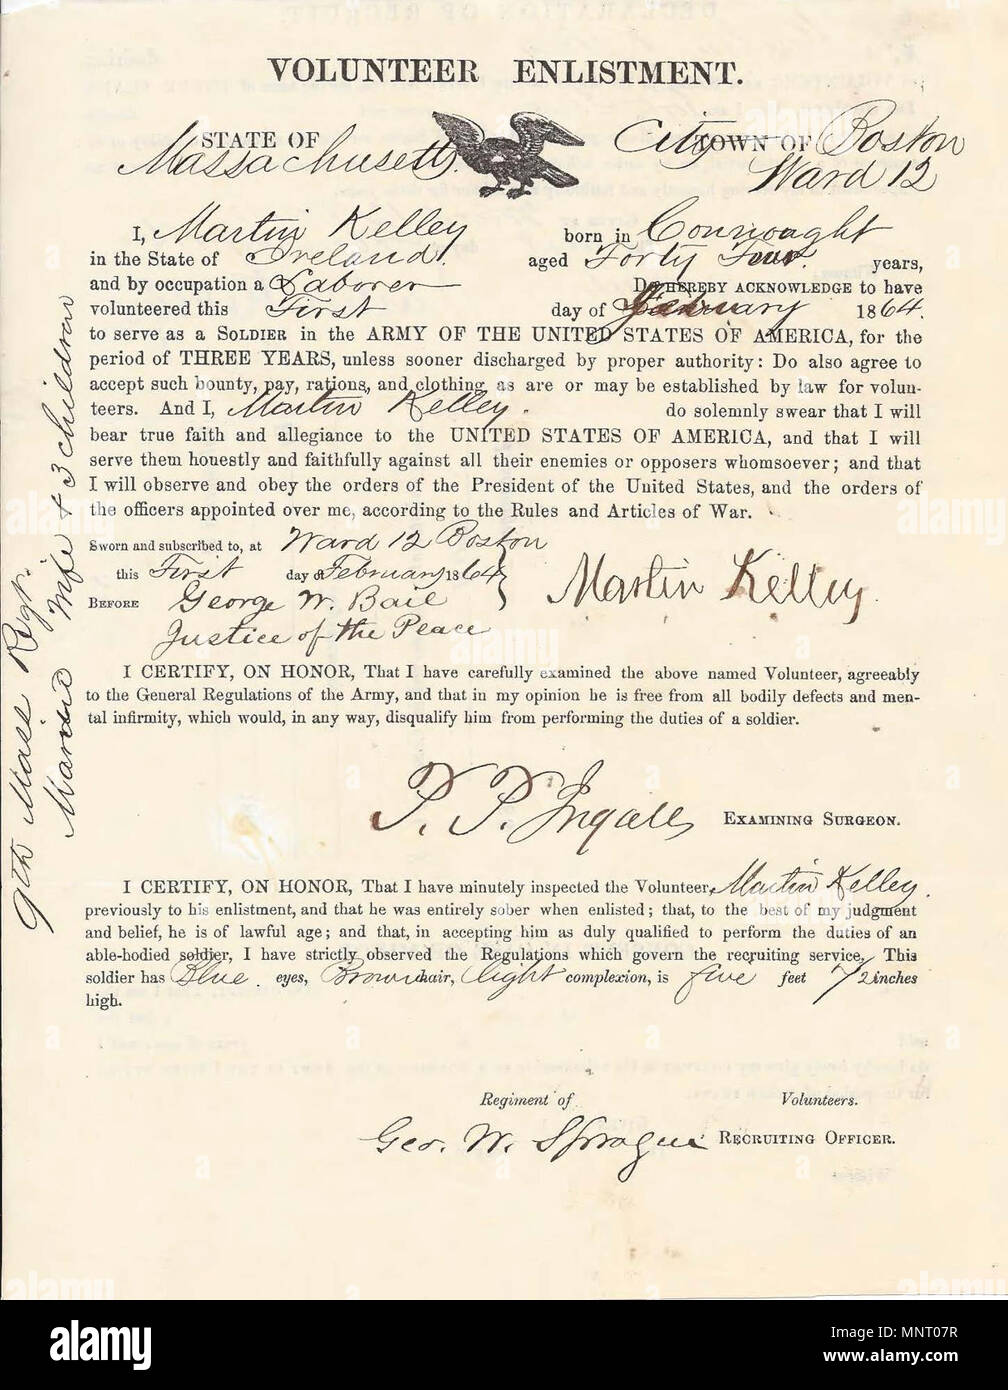 HANSCOM AIR FORCE BASE -- Civil War era enlistment papers shows the Martin Kelley of Ireland volunteered to serve in the 9th Massachusetts Infantry Regiment. In the war against slavery, at least 140,000 Irish immigrants and first generation Irish-Americans served in the military. Stock Photo